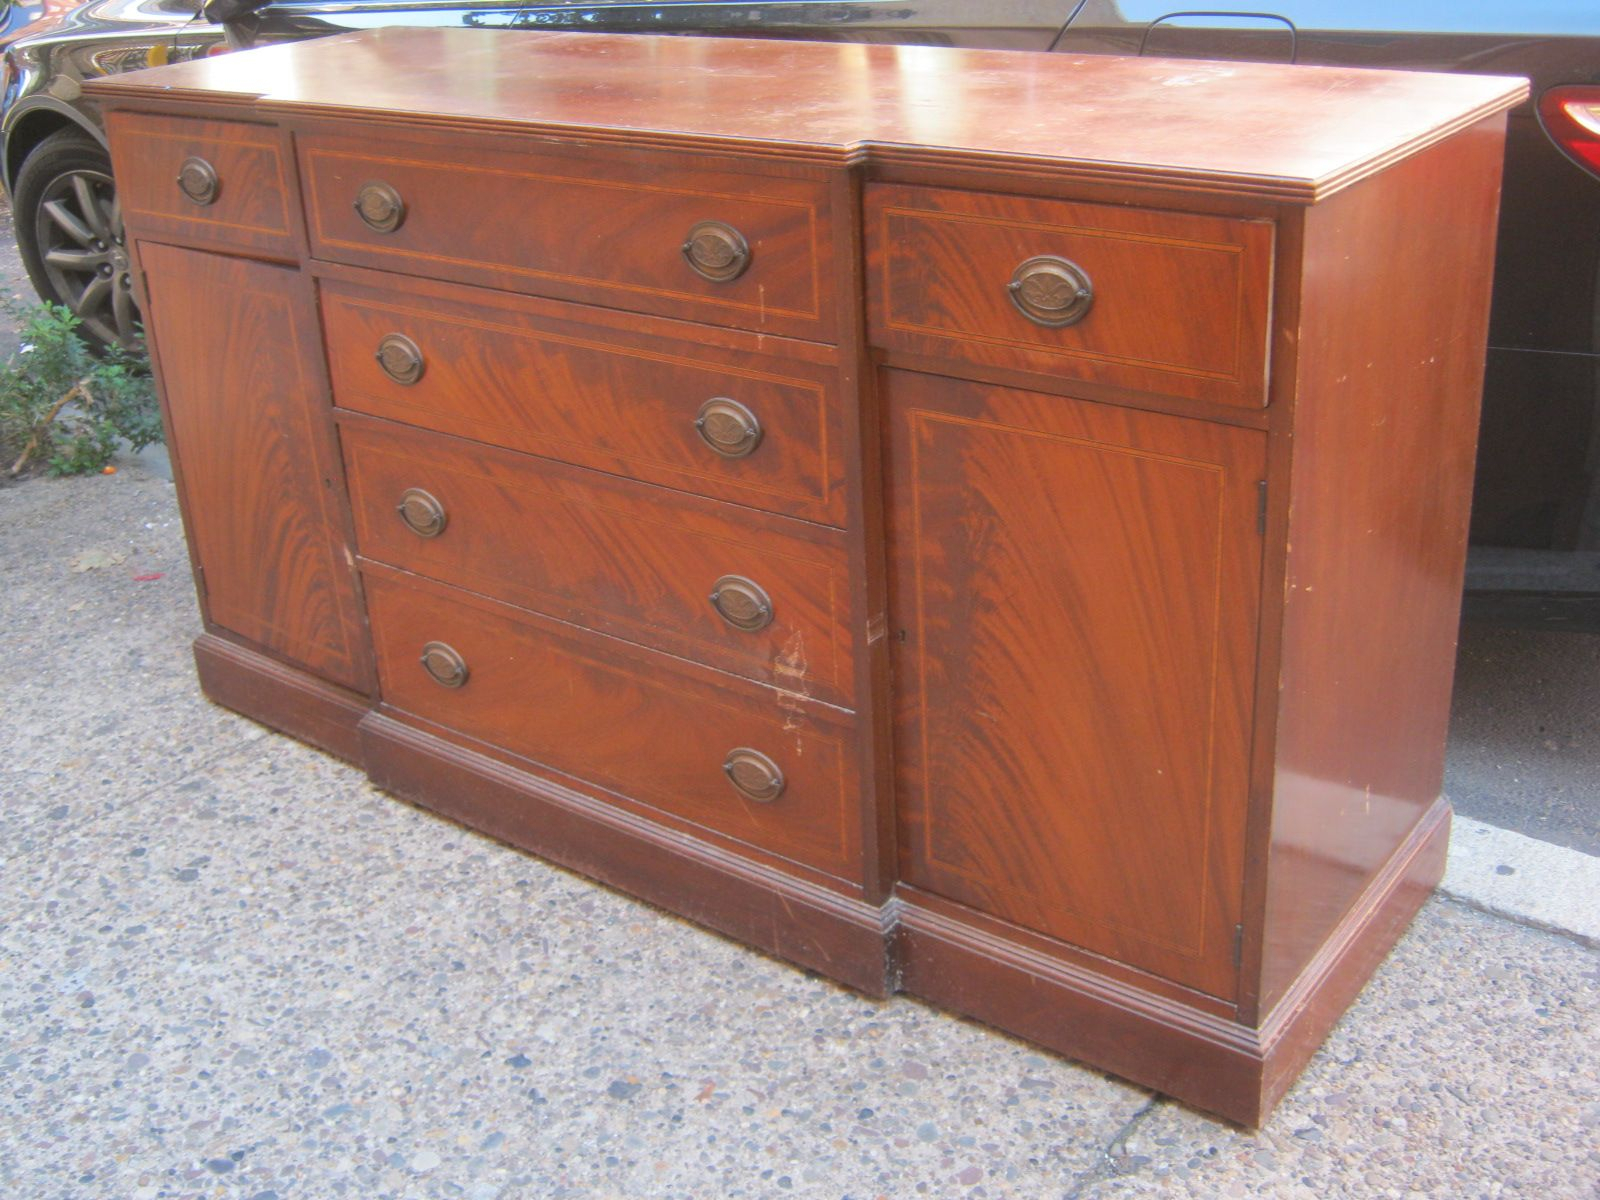 1940S Furniture | Mahogany 1940S Sideboard Sold | 1940S Intended For Joyner Sideboards (Image 1 of 30)